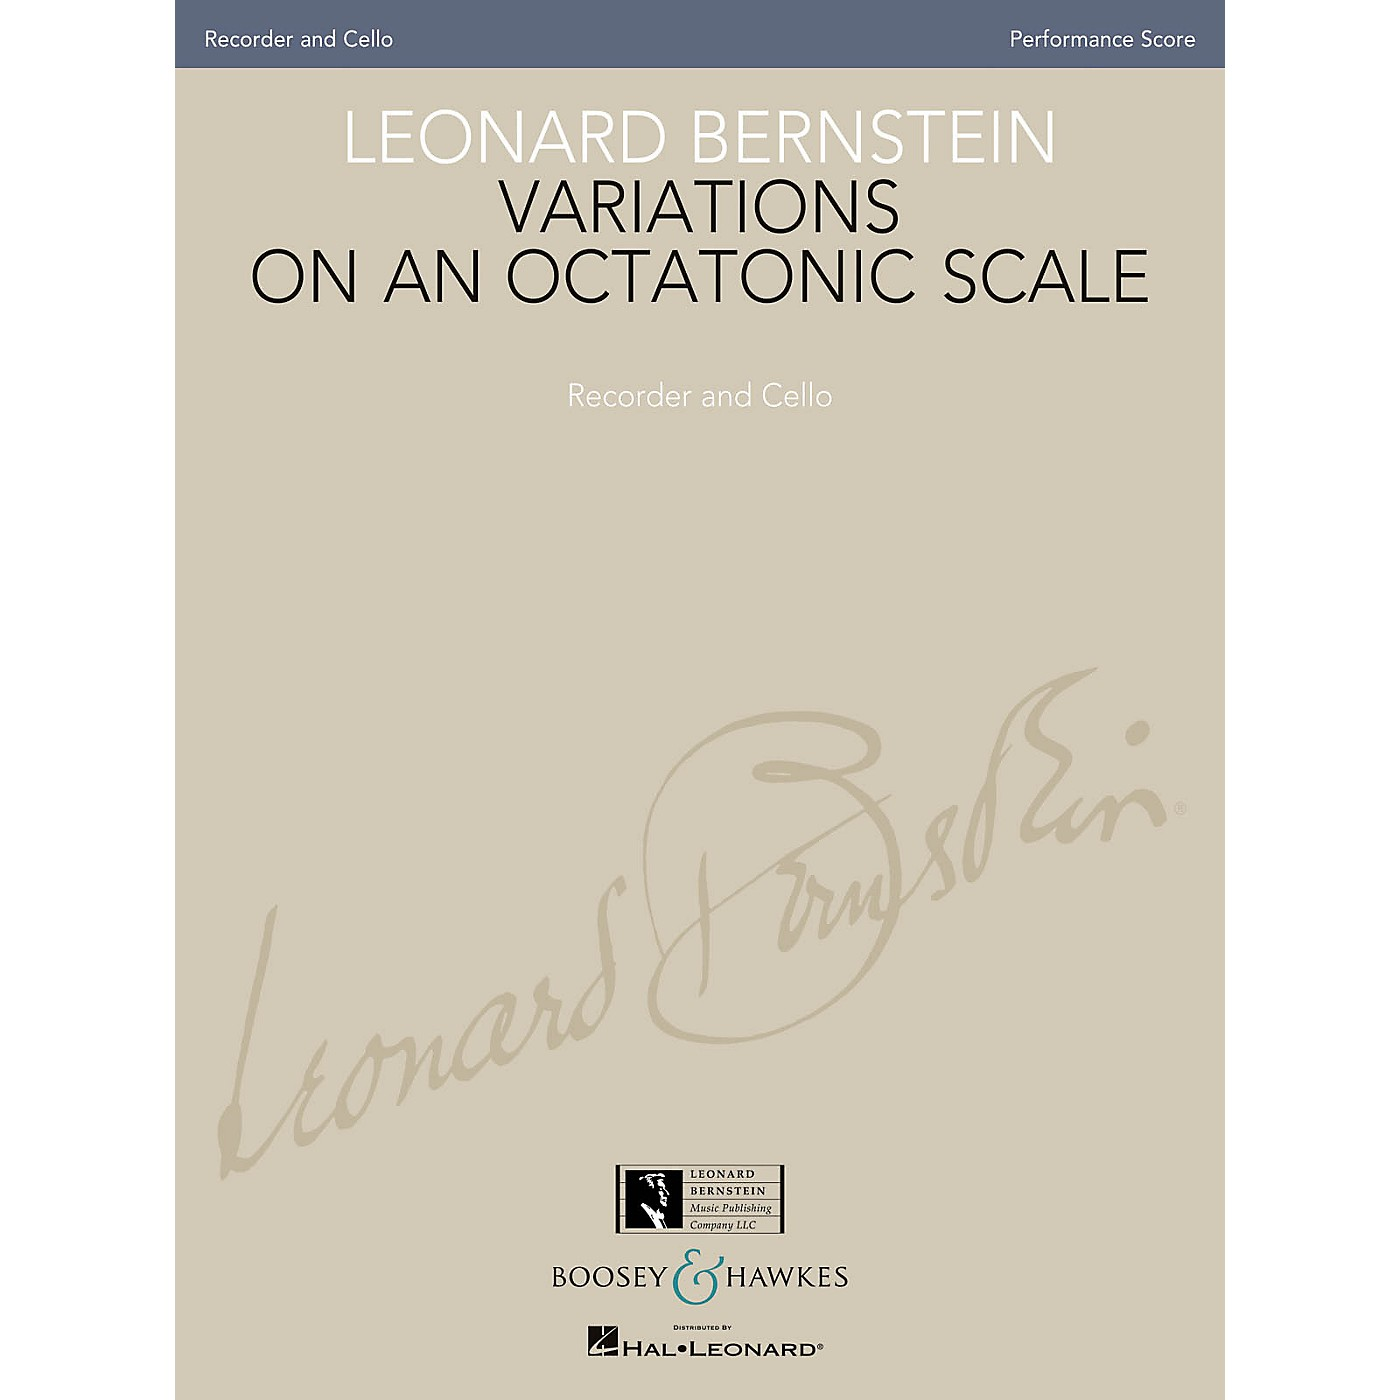 Boosey and Hawkes Leonard Bernstein - Variations on an Octatonic Scale Boosey & Hawkes Chamber Music by Leonard Bernstein thumbnail